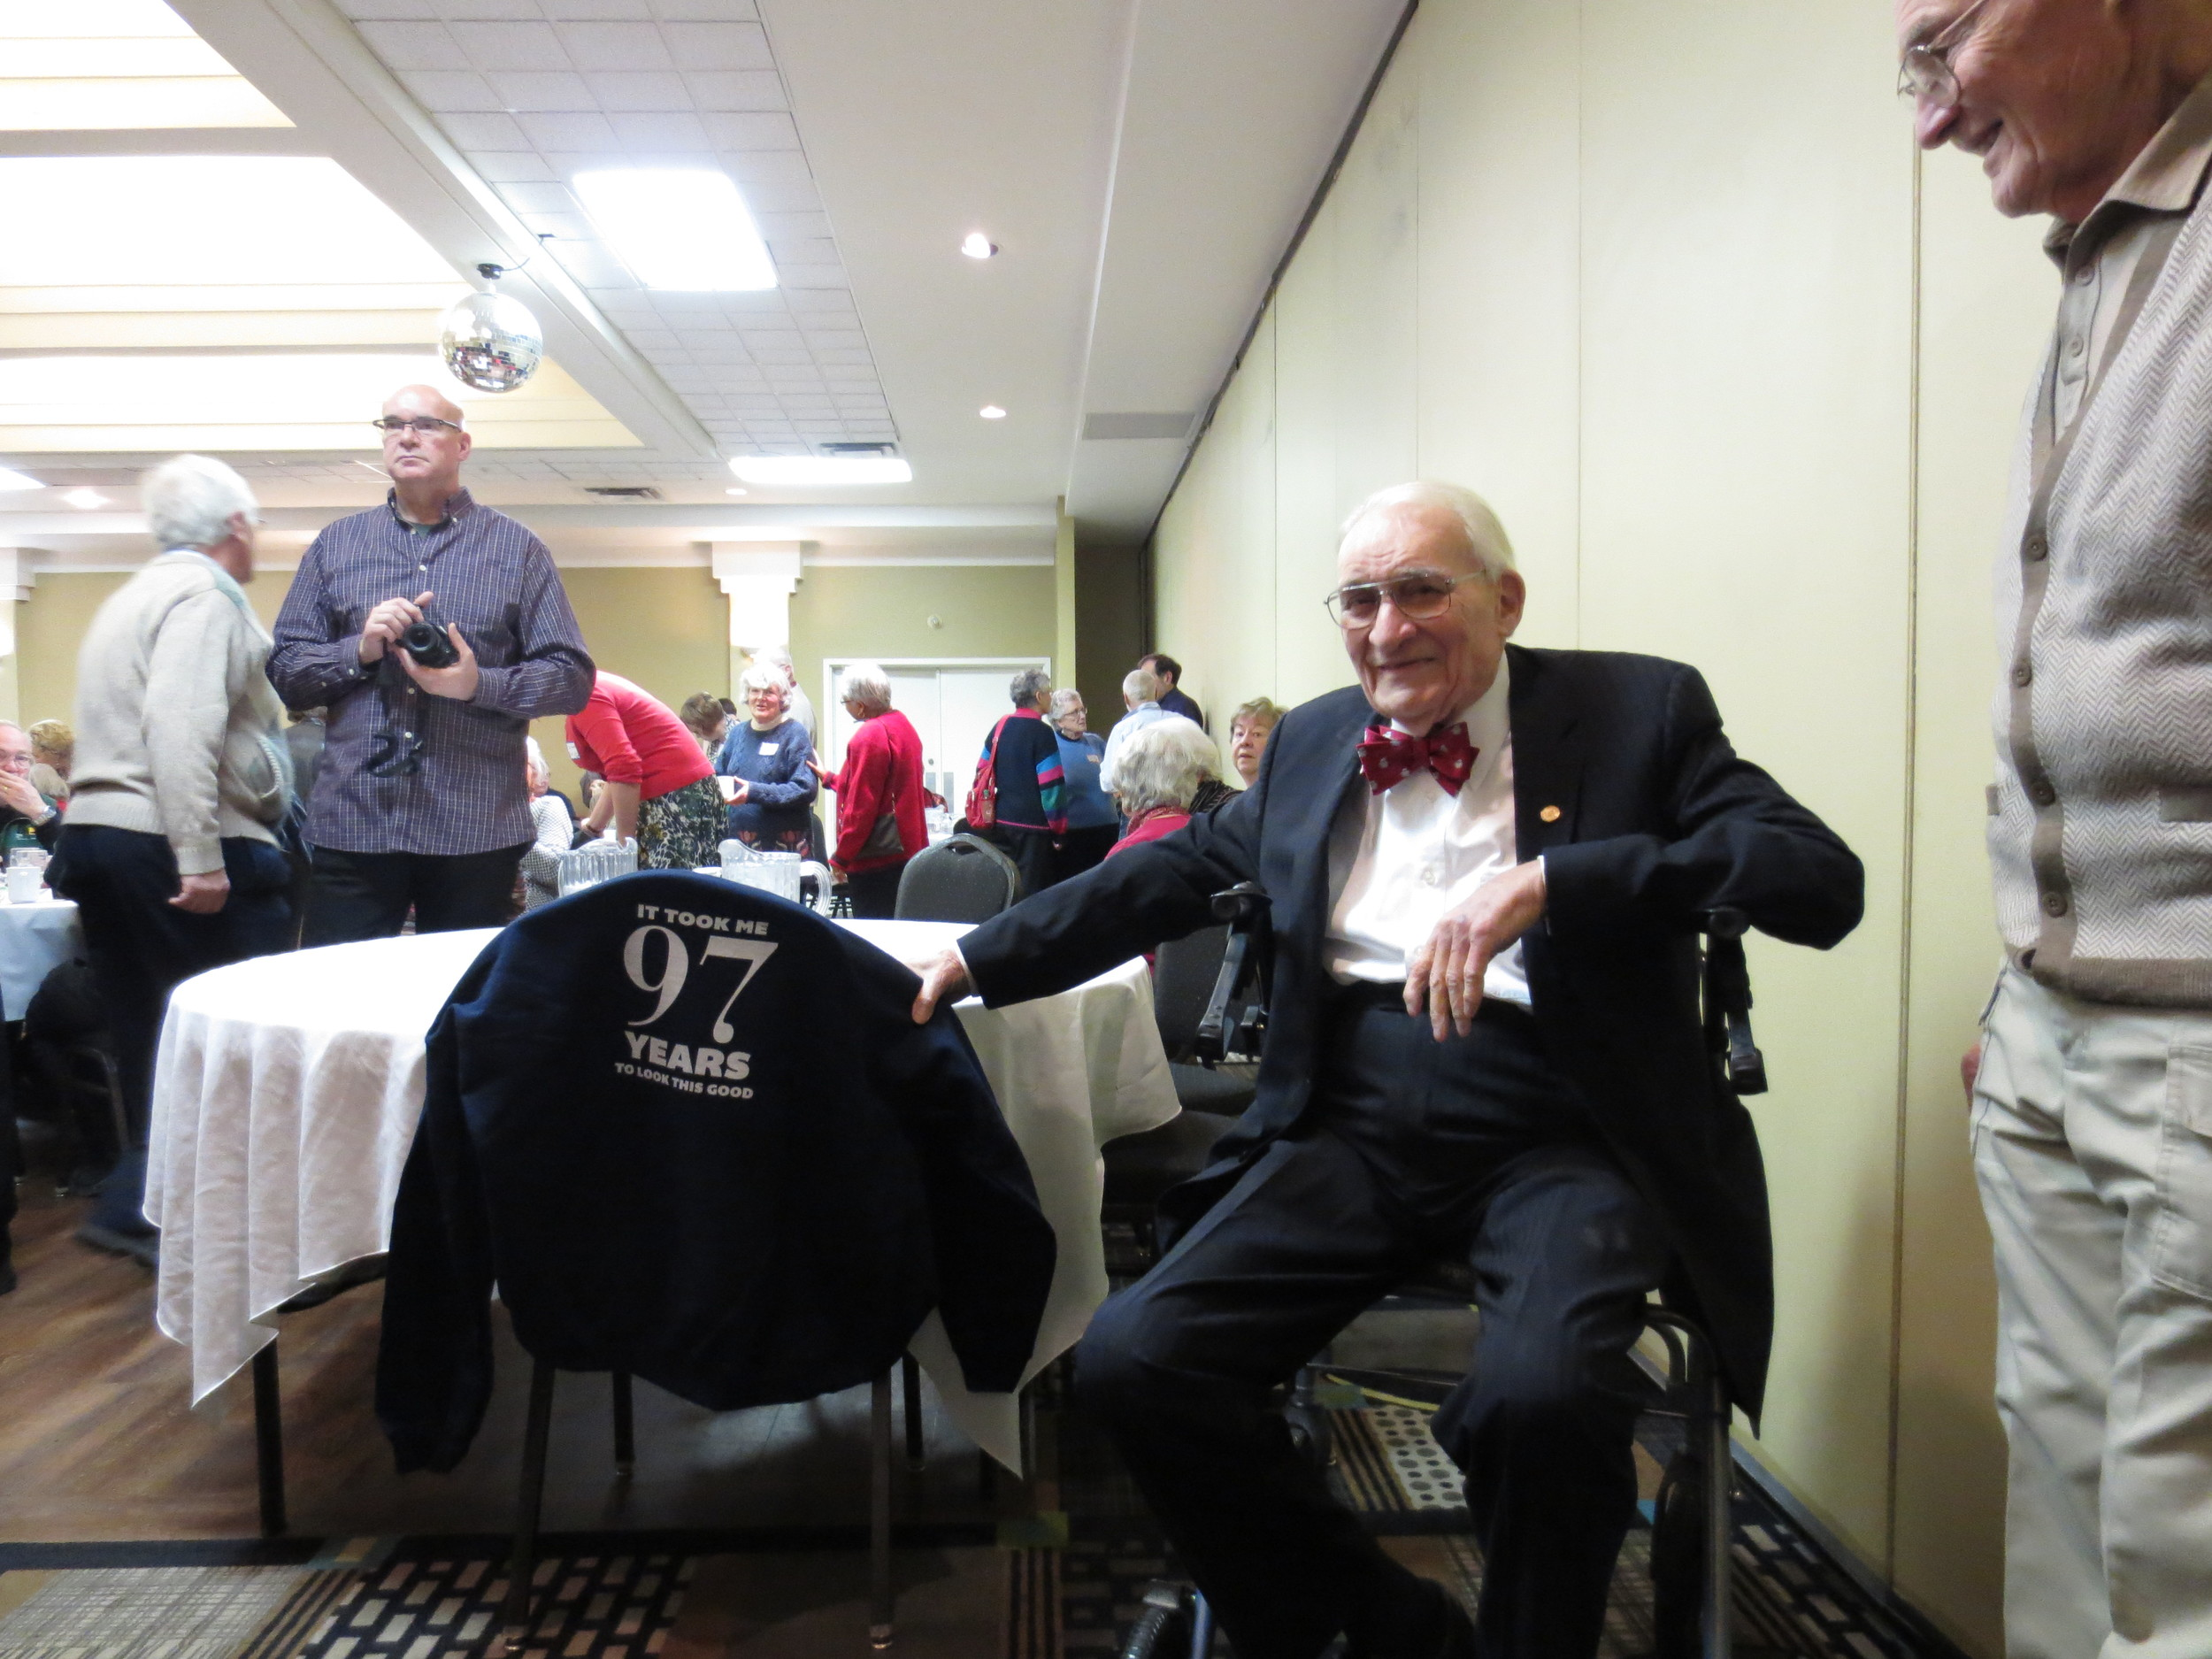 Jack Boan celebrating his 97th birthday in December 2014 in Regina, Saskatchewan.